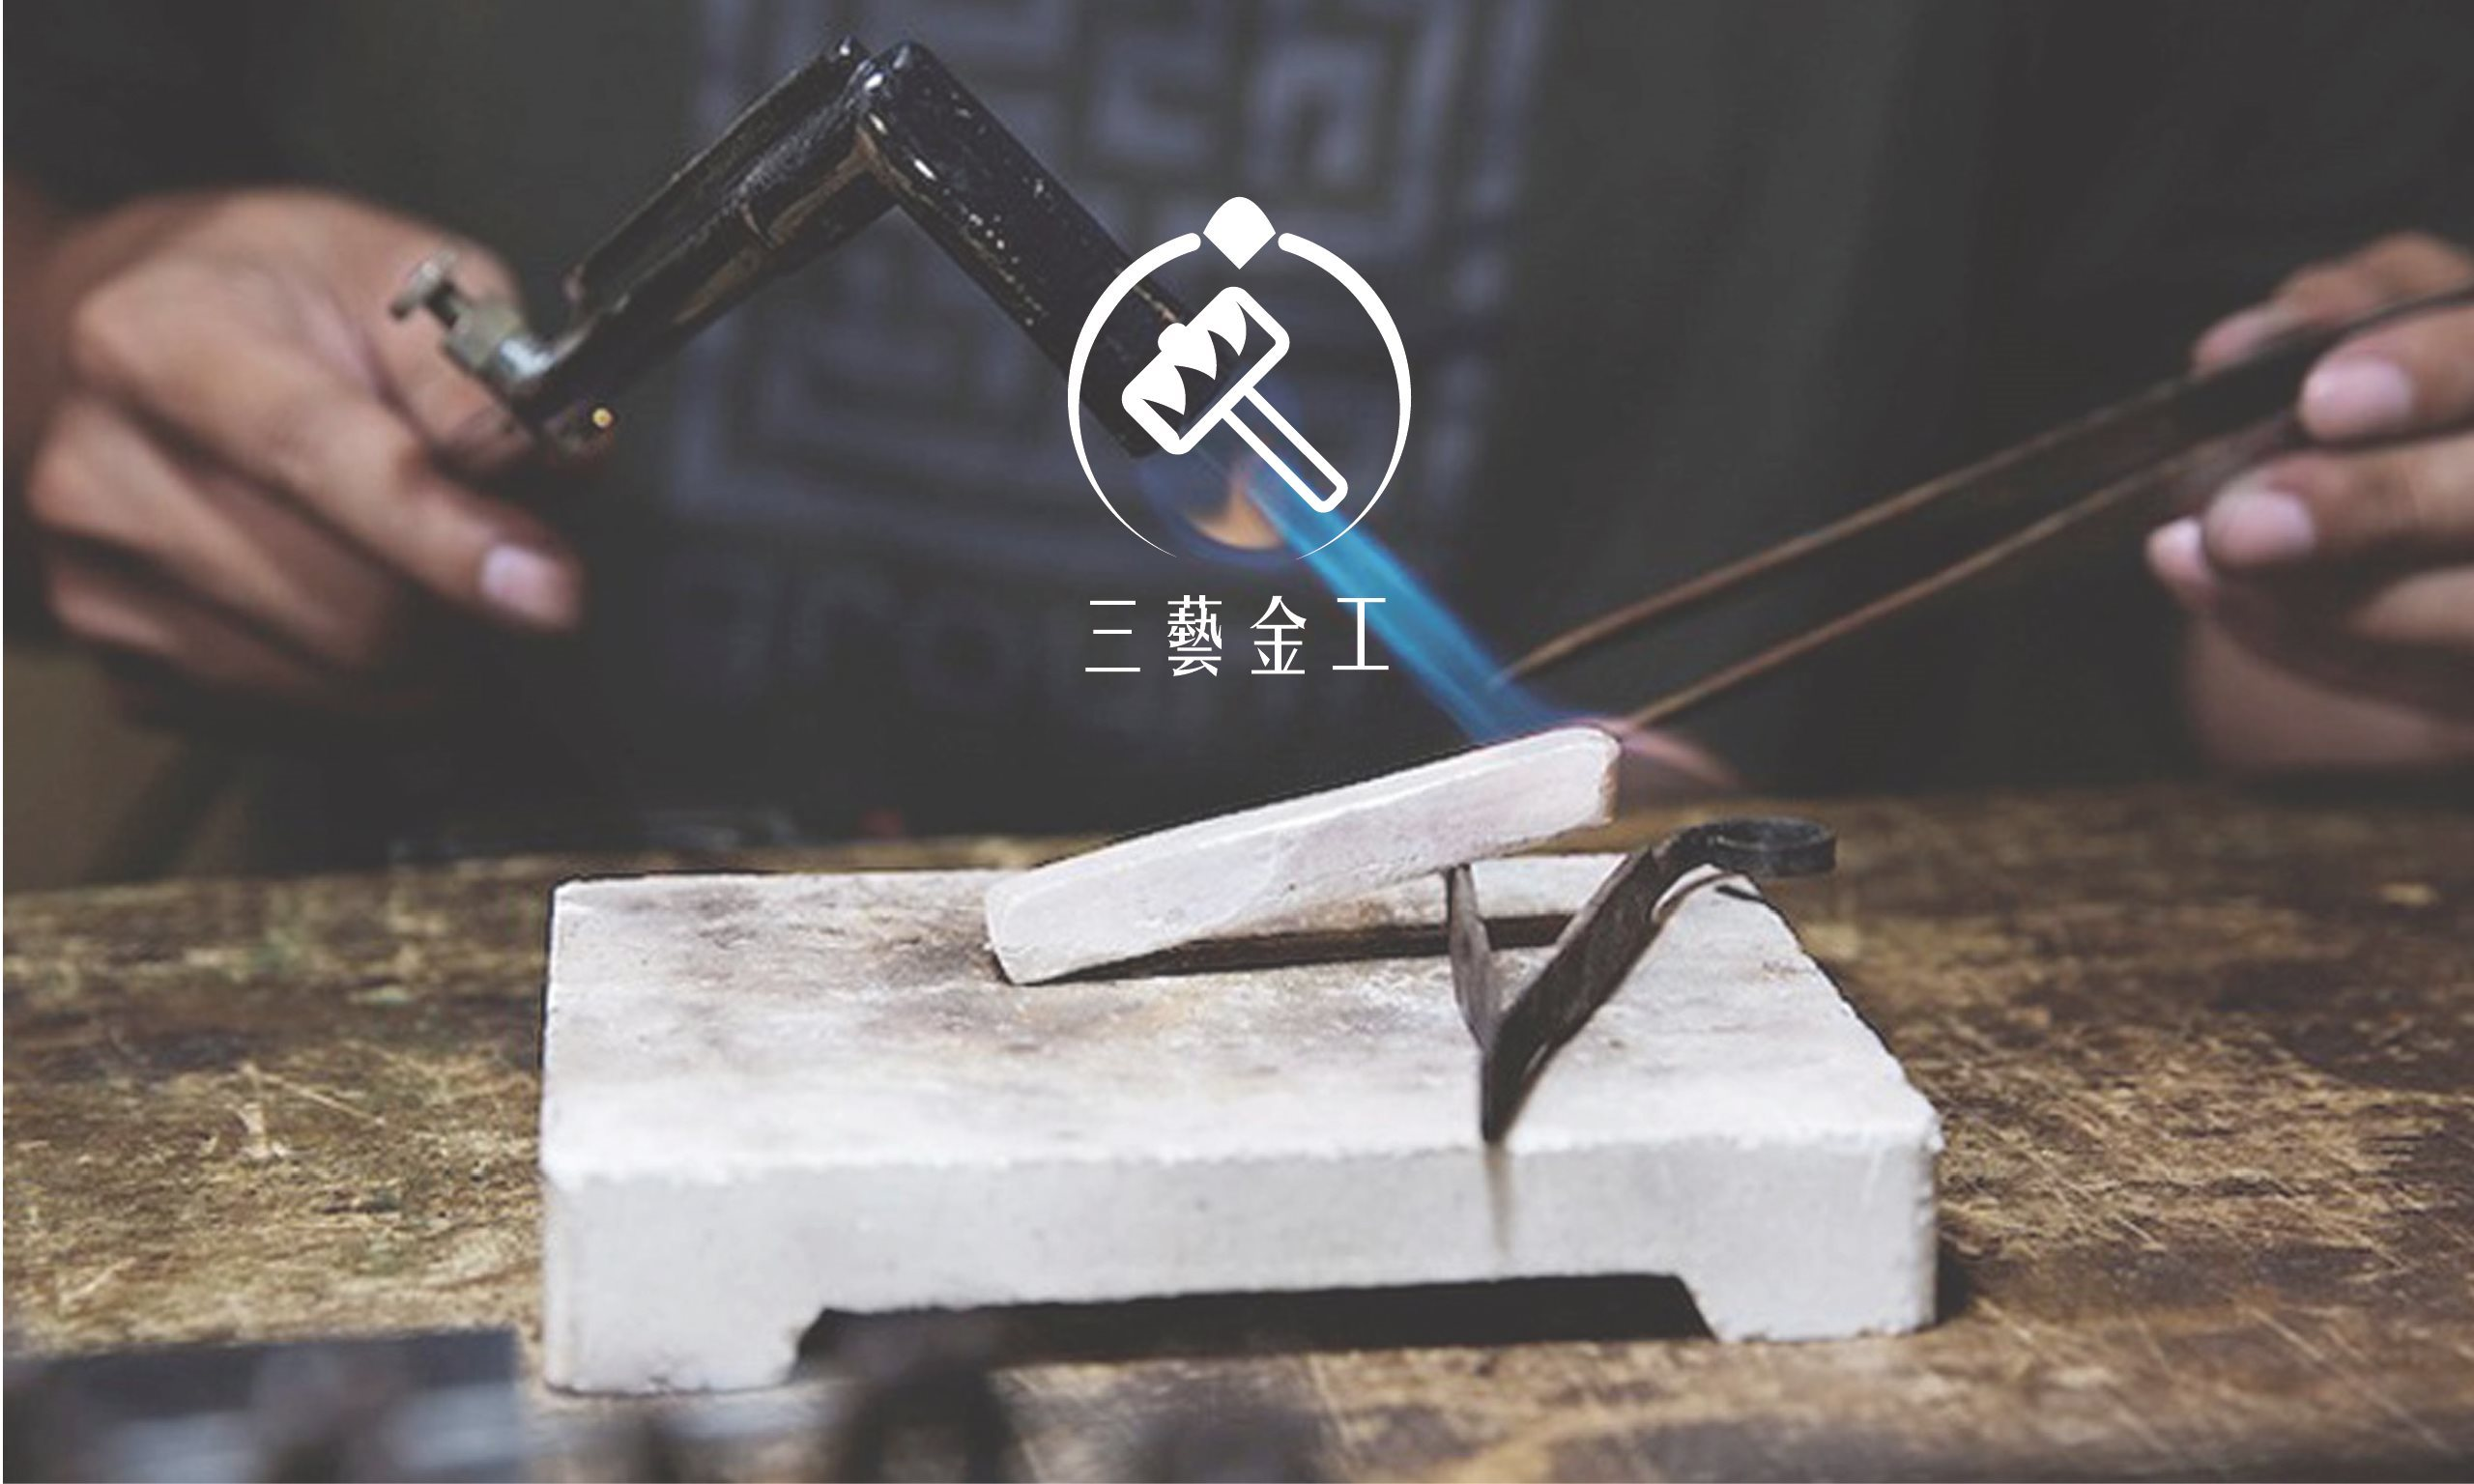 Corporate Identity System of Sanyi Metalworking - Taiwan brand design